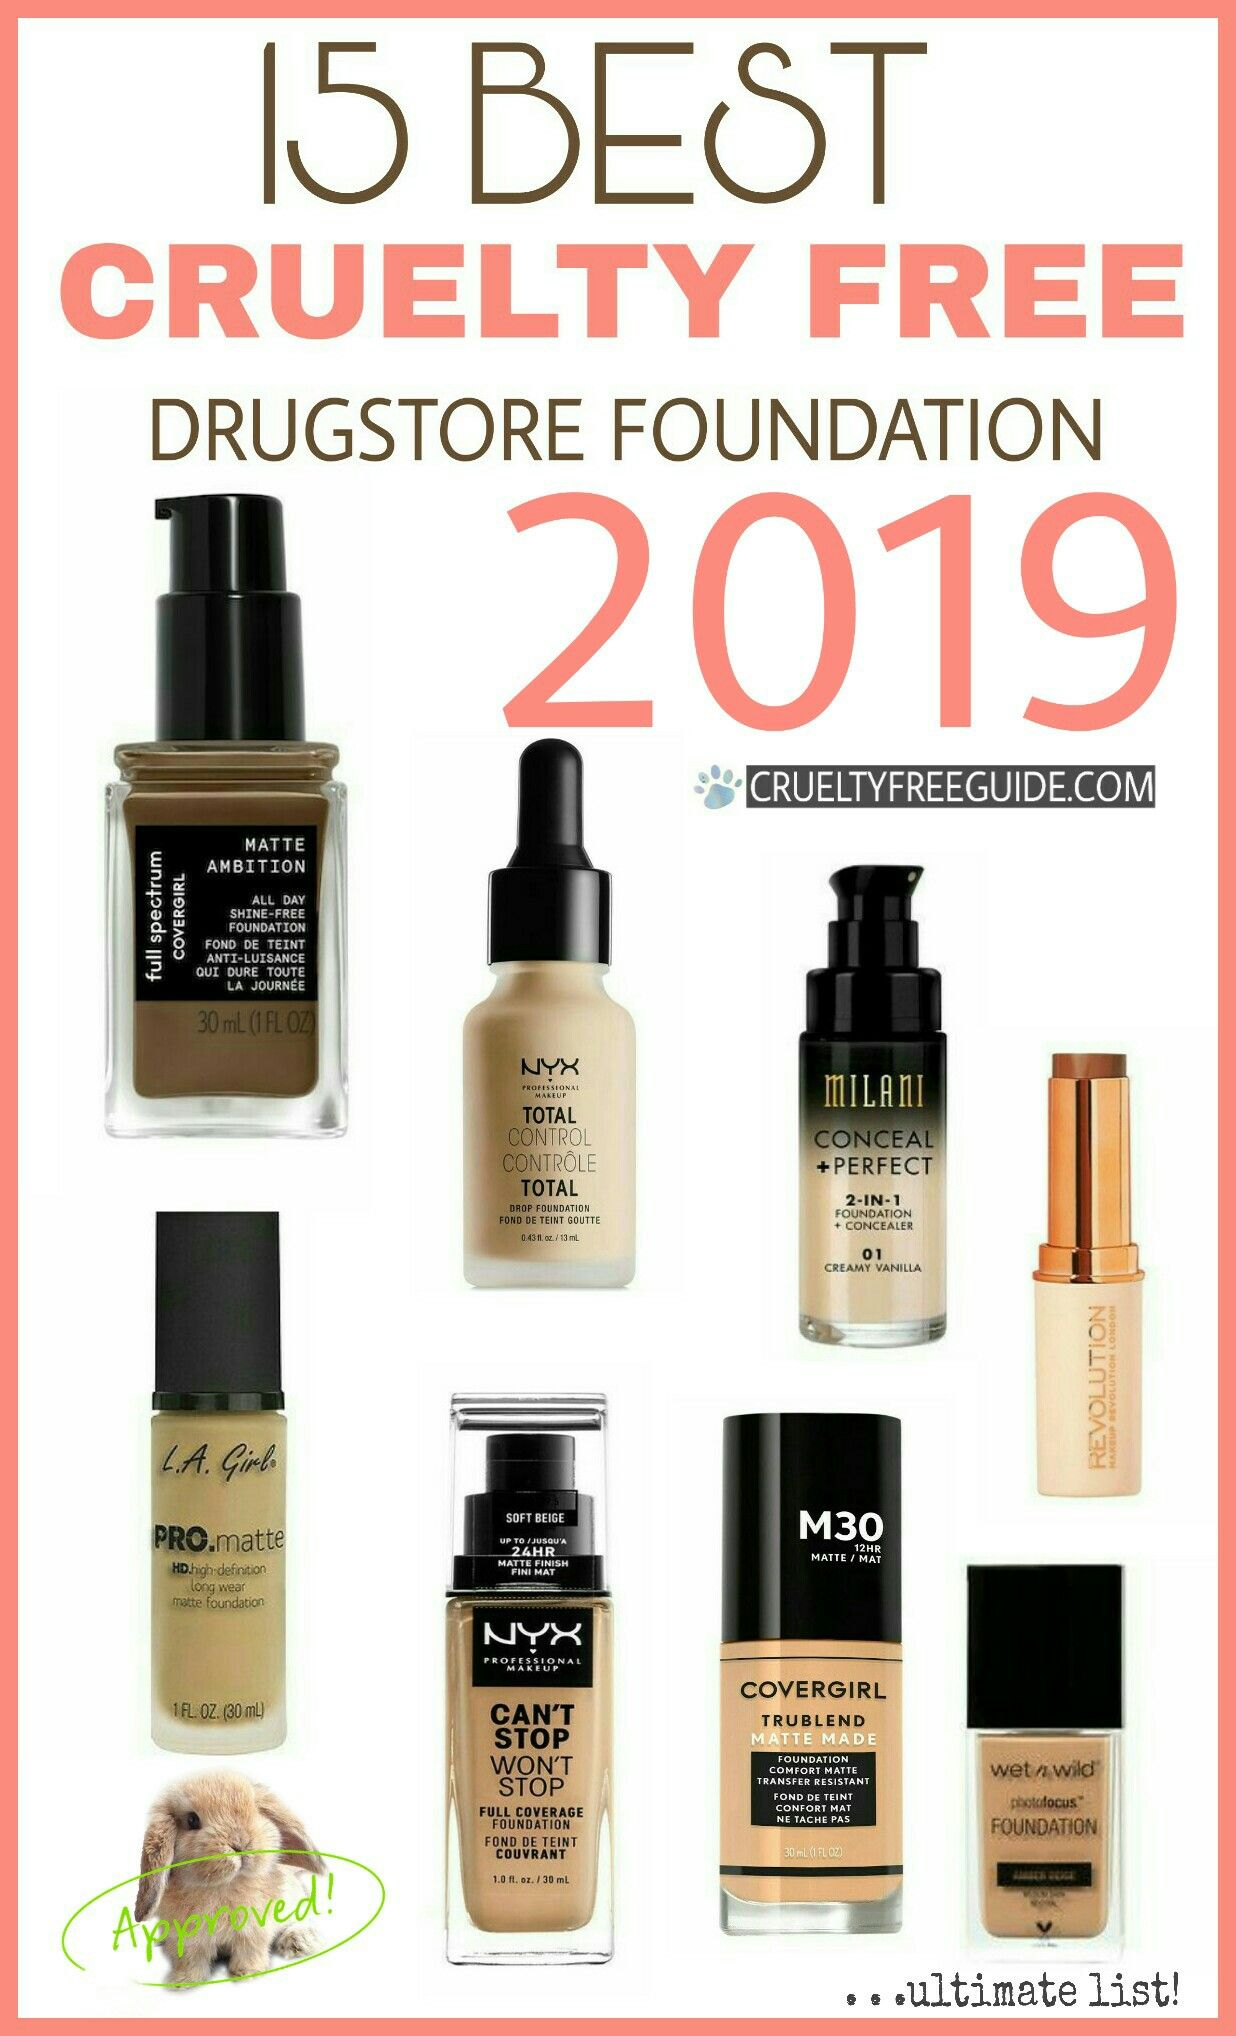 Best Drugstore Foundation 2019 15 Amazing Drugstore Foundations That Are Cruelty Free *2019